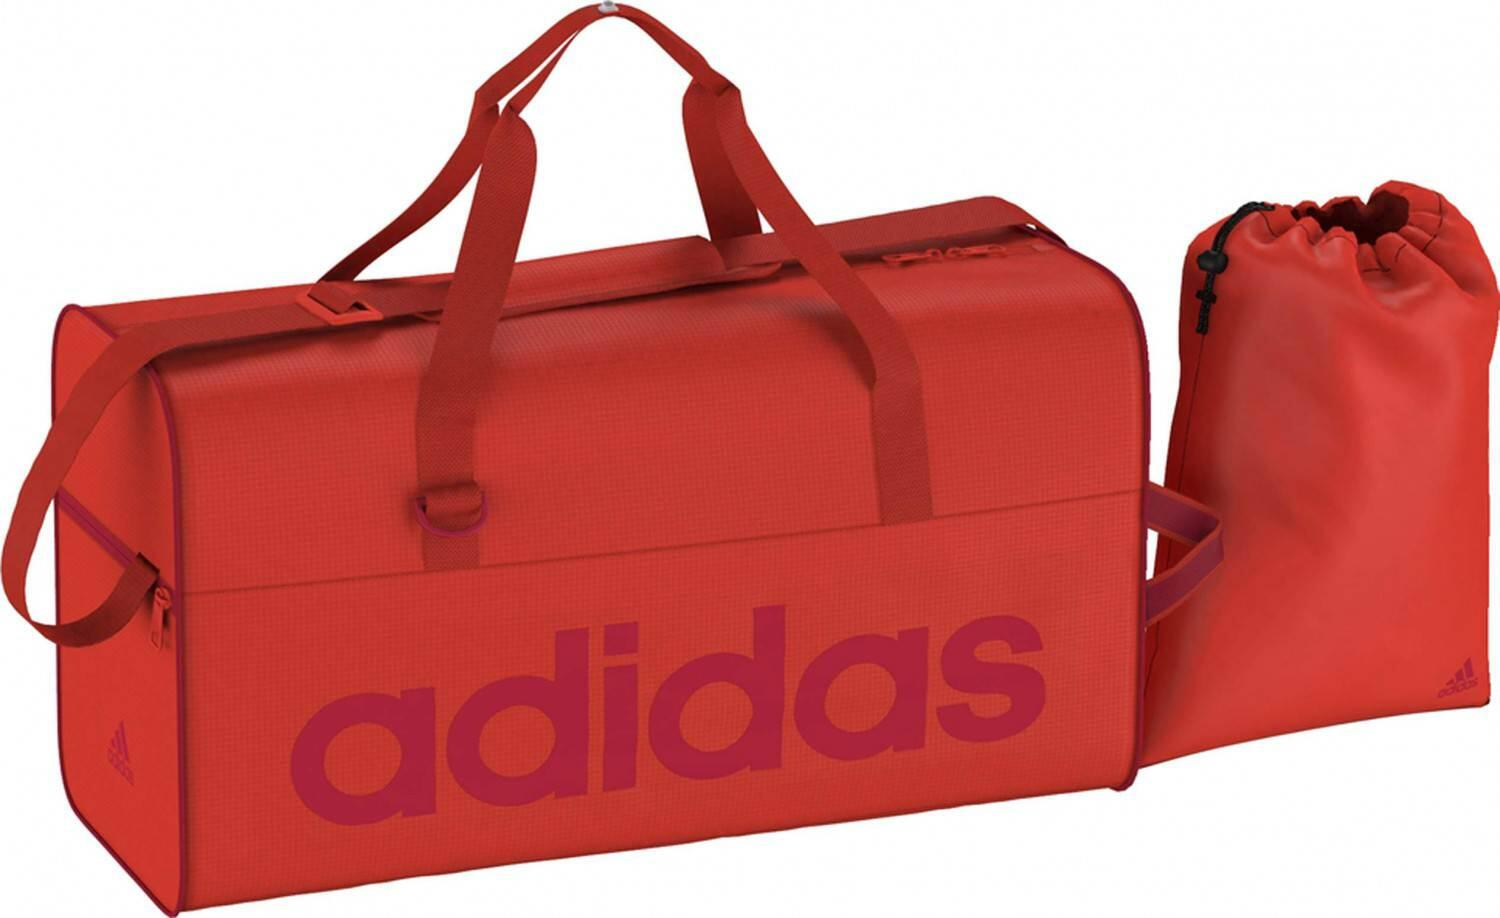 adidas-linear-performance-teambag-s-tasche-farbe-bold-orange-scarlet-scarlet-